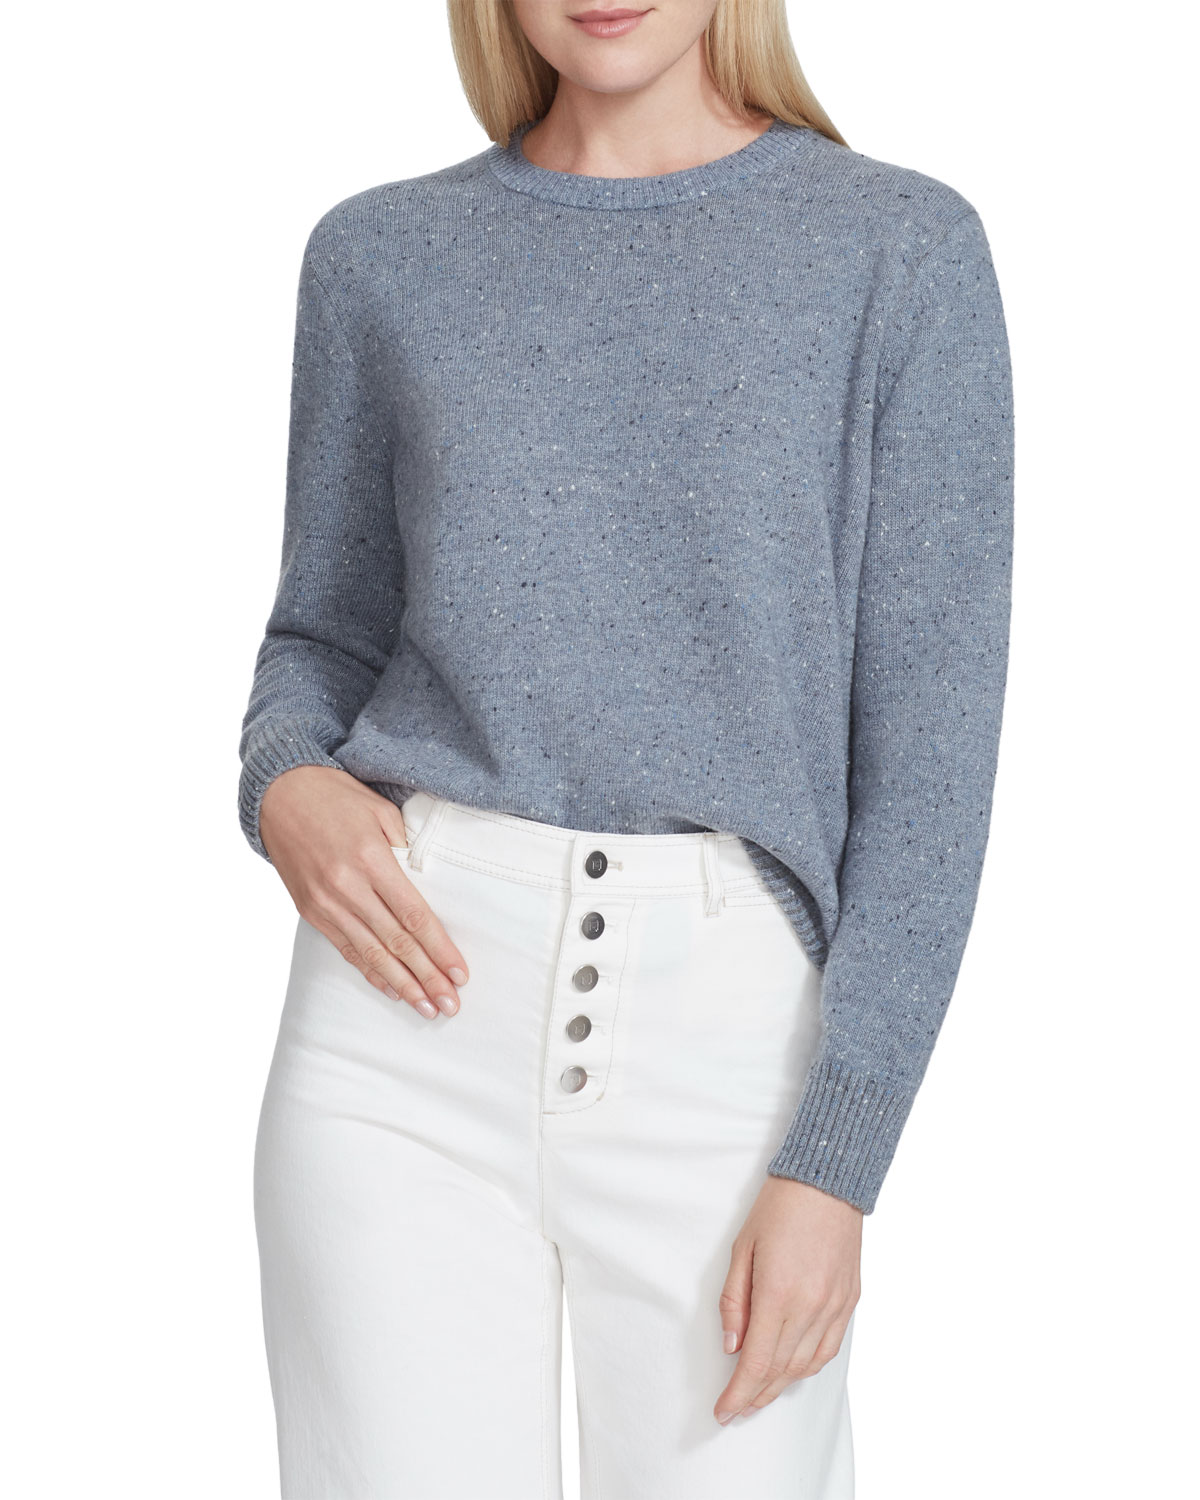 Lafayette 148 Sweaters DONEGAL SPECKLED WOOL CREWNECK SWEATER